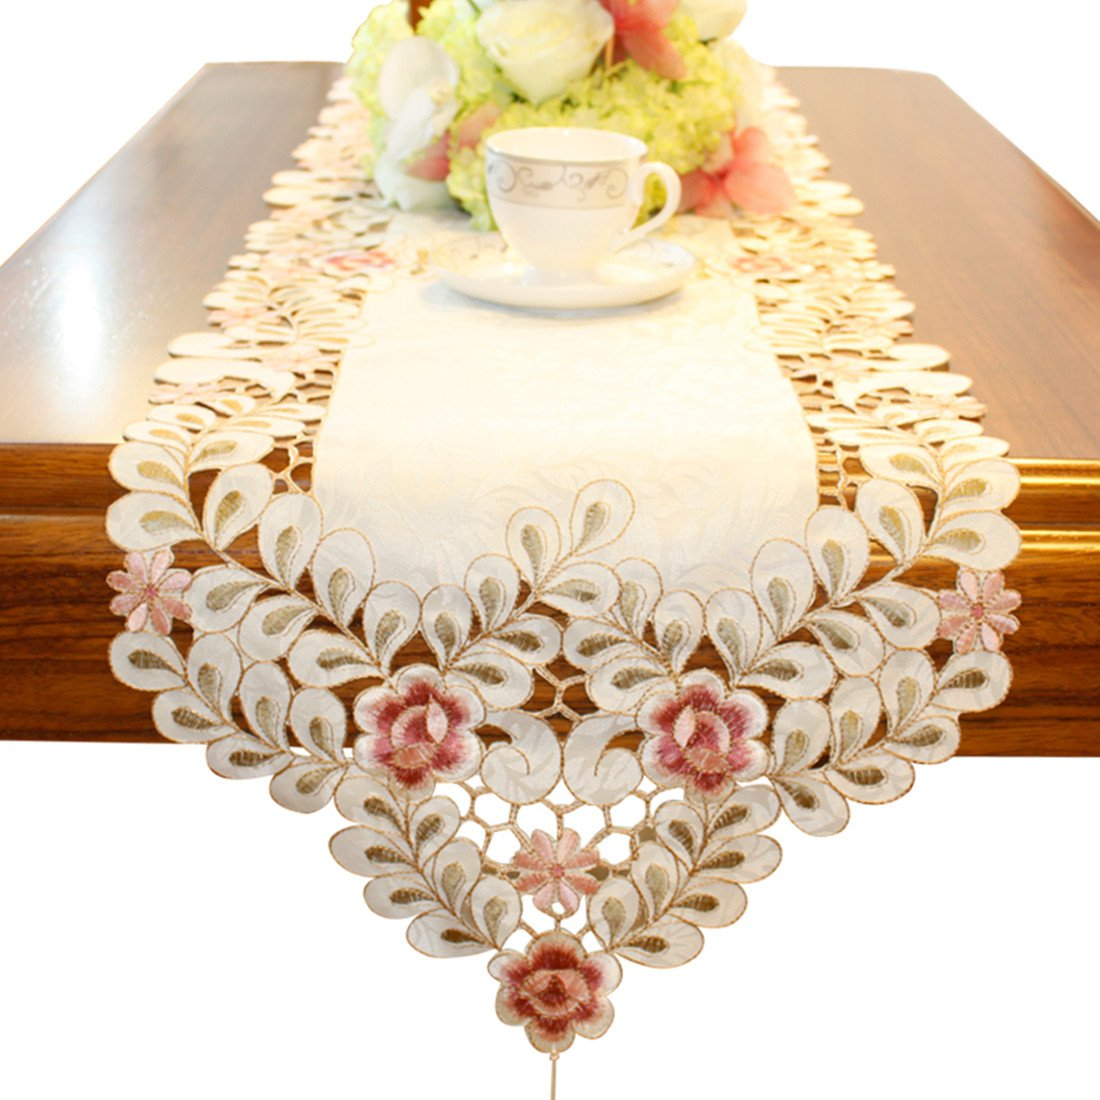 Pink flower embroidered hemstitch easter table runner tapestry 84 inch approx